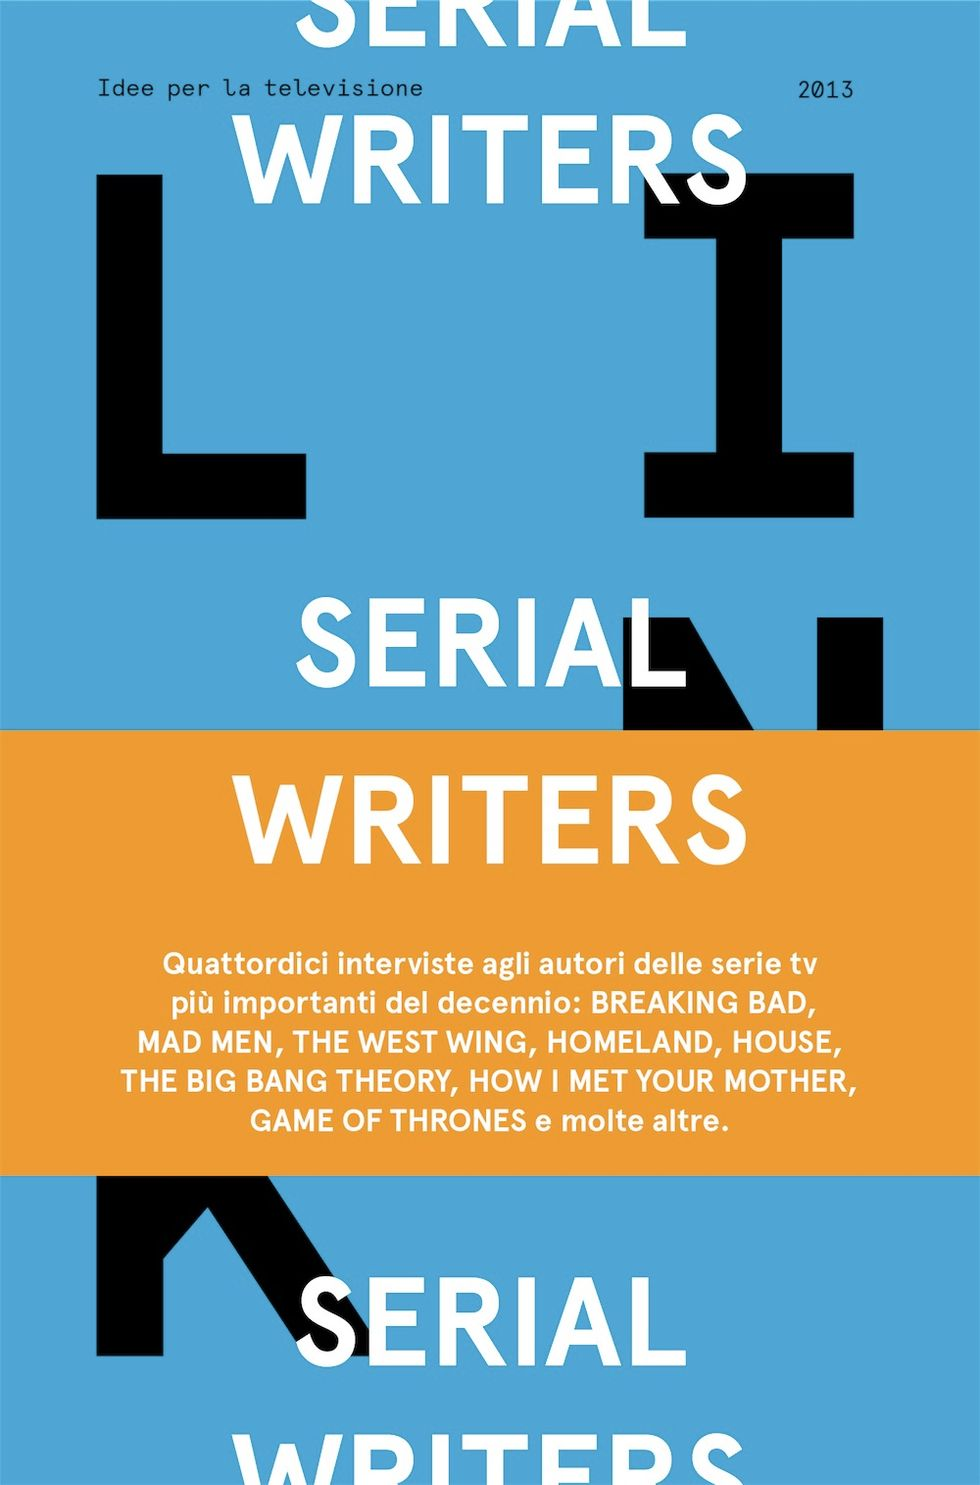 Serial Writers: la rivista Link intervista gli autori delle serie tv